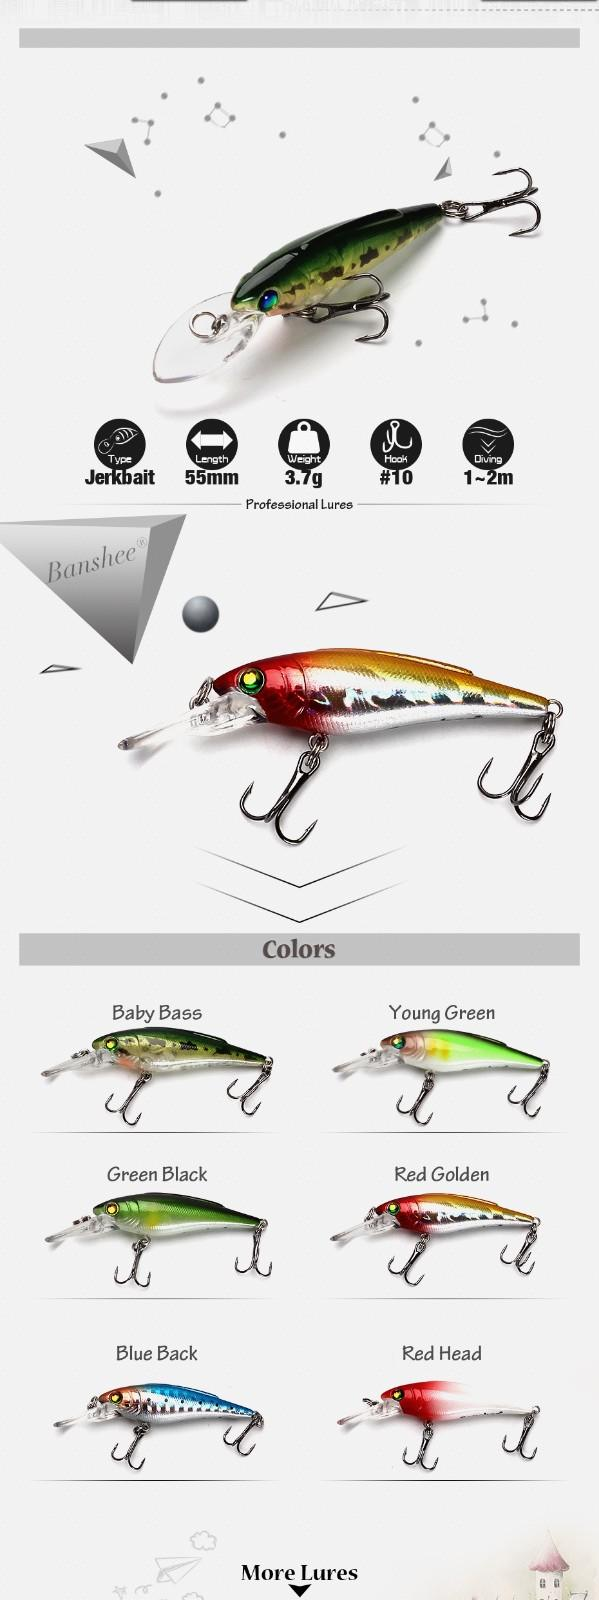 XIN-V -High-quality Musky Lures | Xin-v Minnow Lure 55mm 37g K223 Slow Sinking